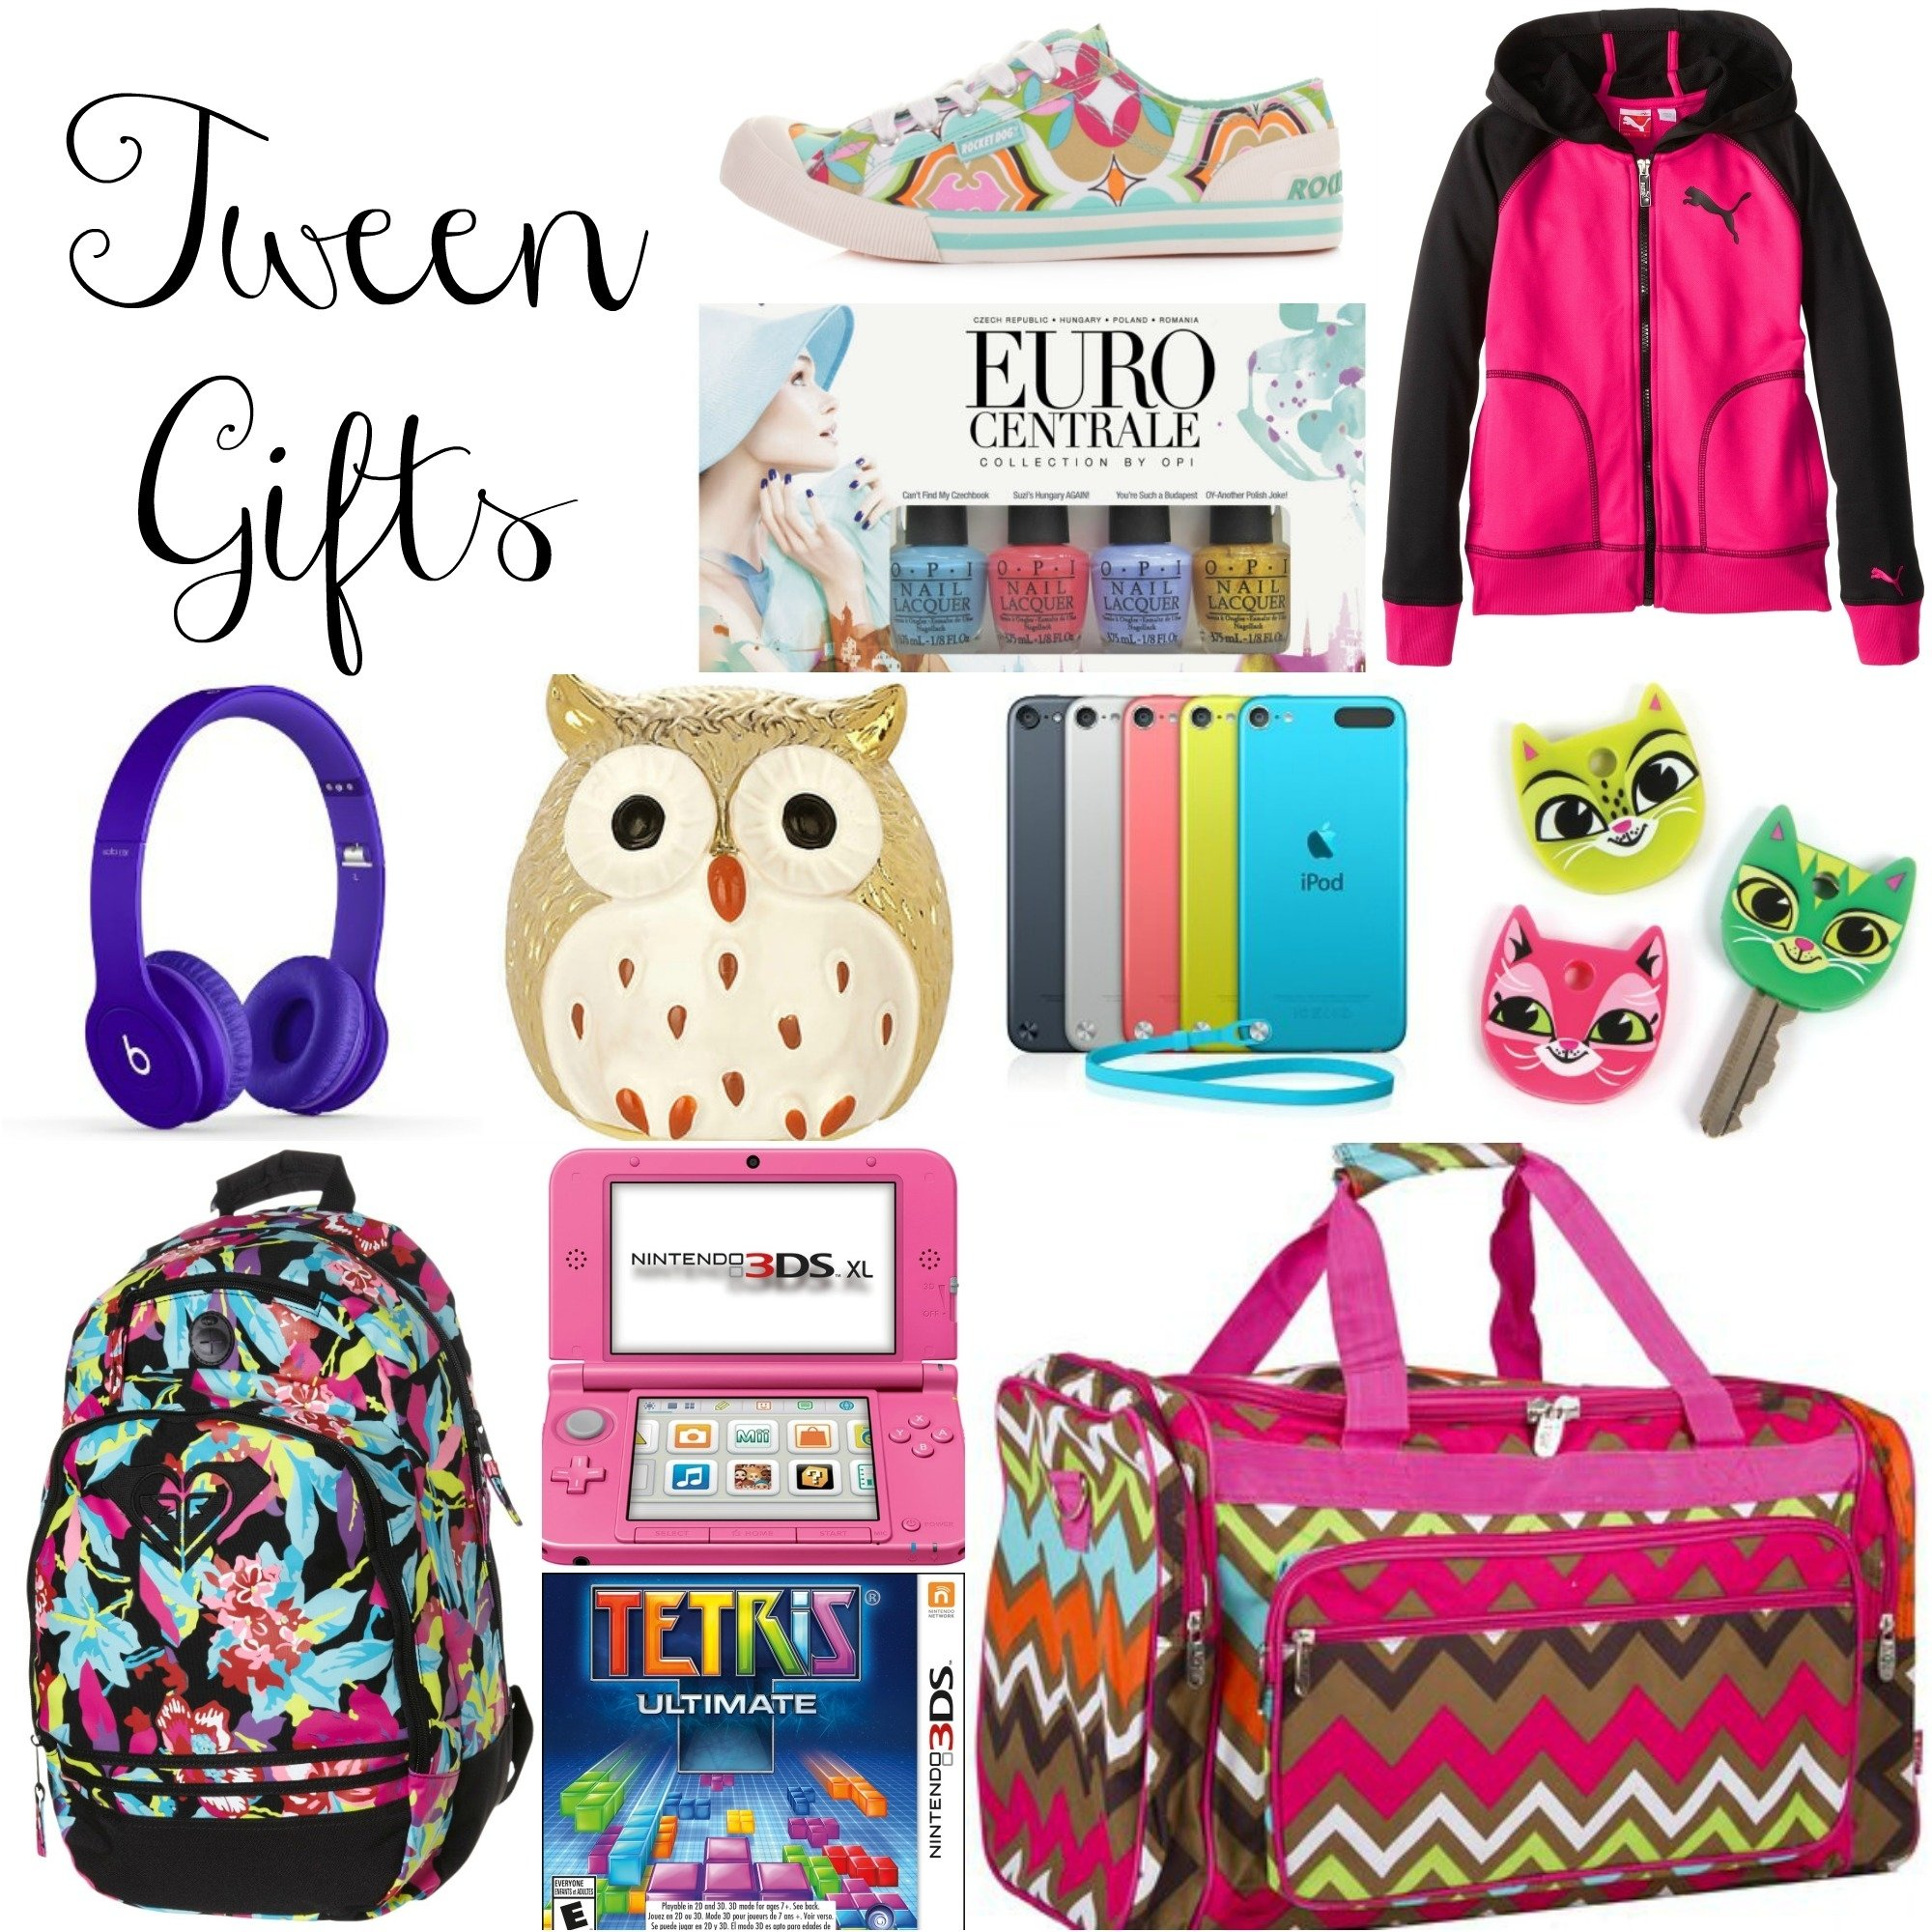 10 Unique Gift Ideas For Tween Girl 21 great gifts for tweens confessions of a 3 2021